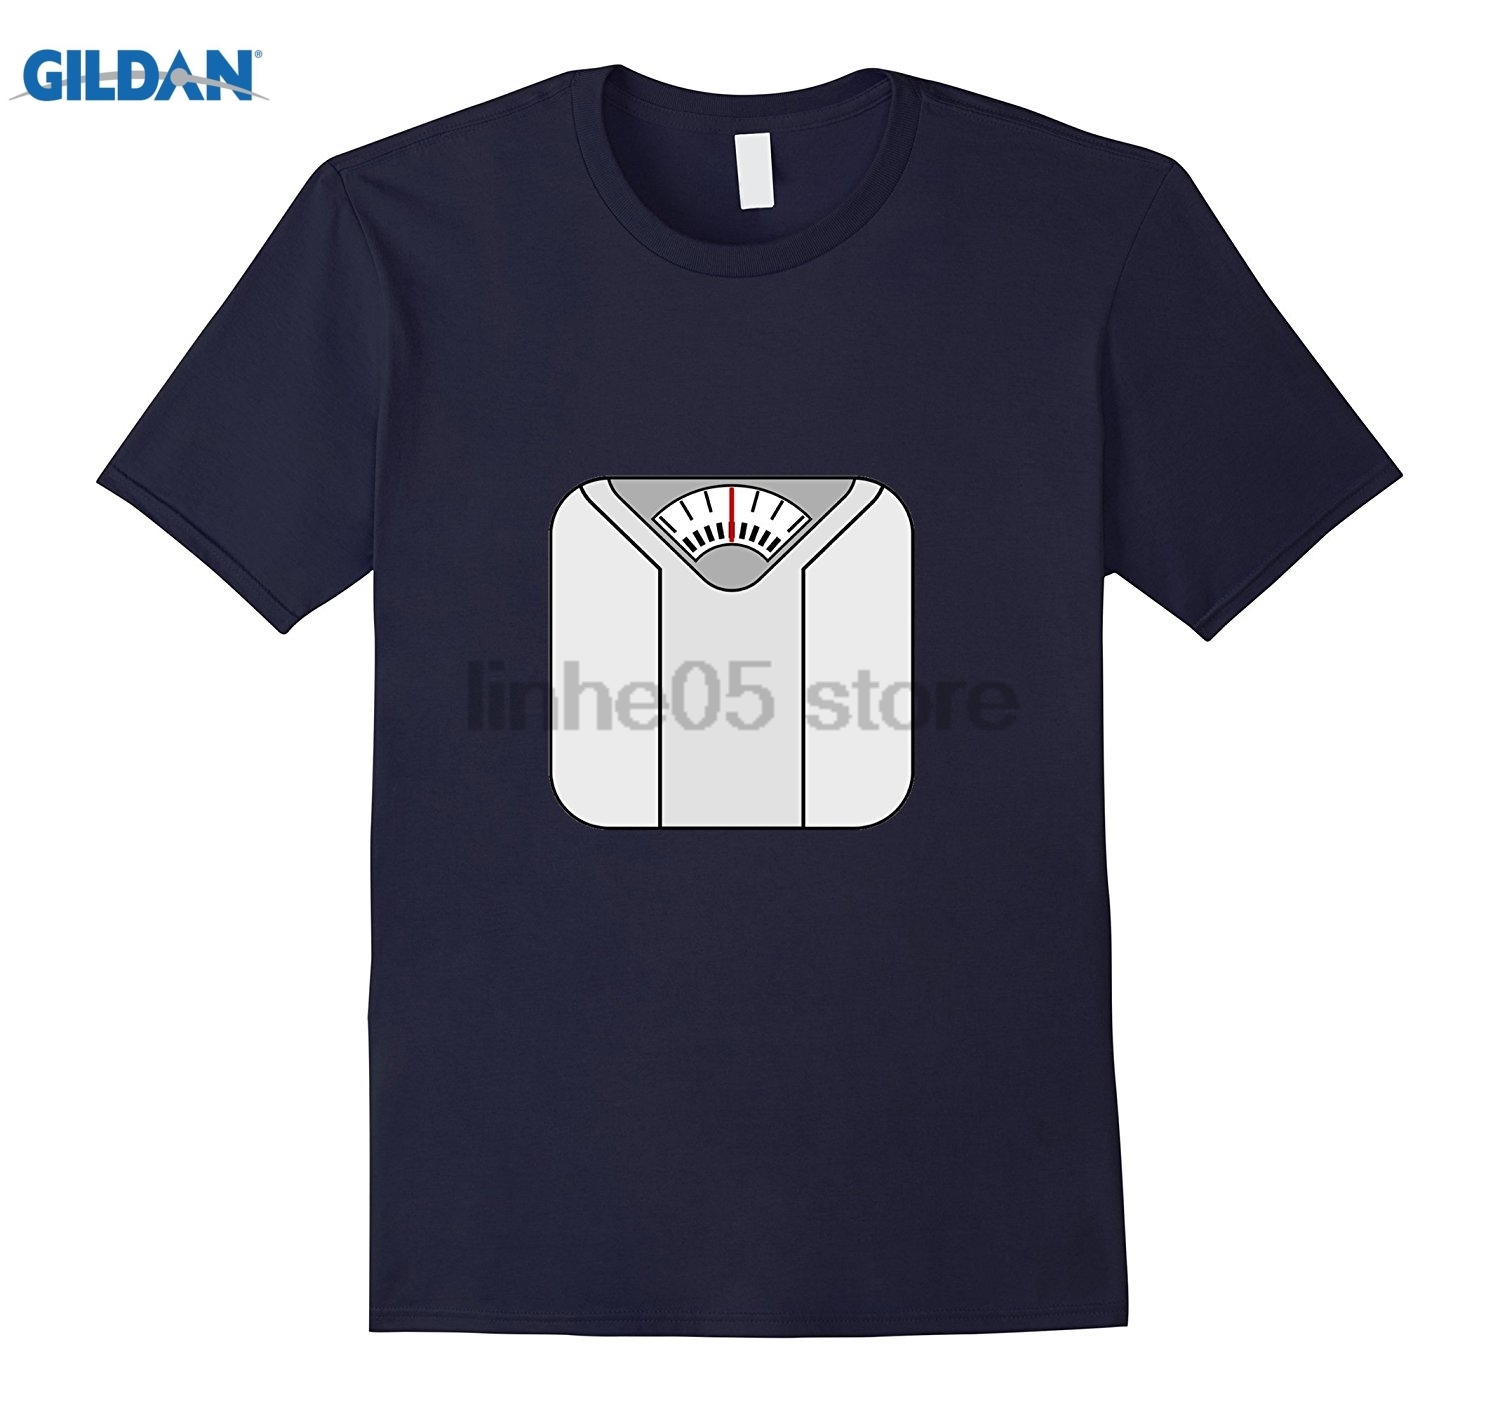 GILDAN Dieting T-Shirt Bathroom Scale Weight Pounds Womens T-shirt ...